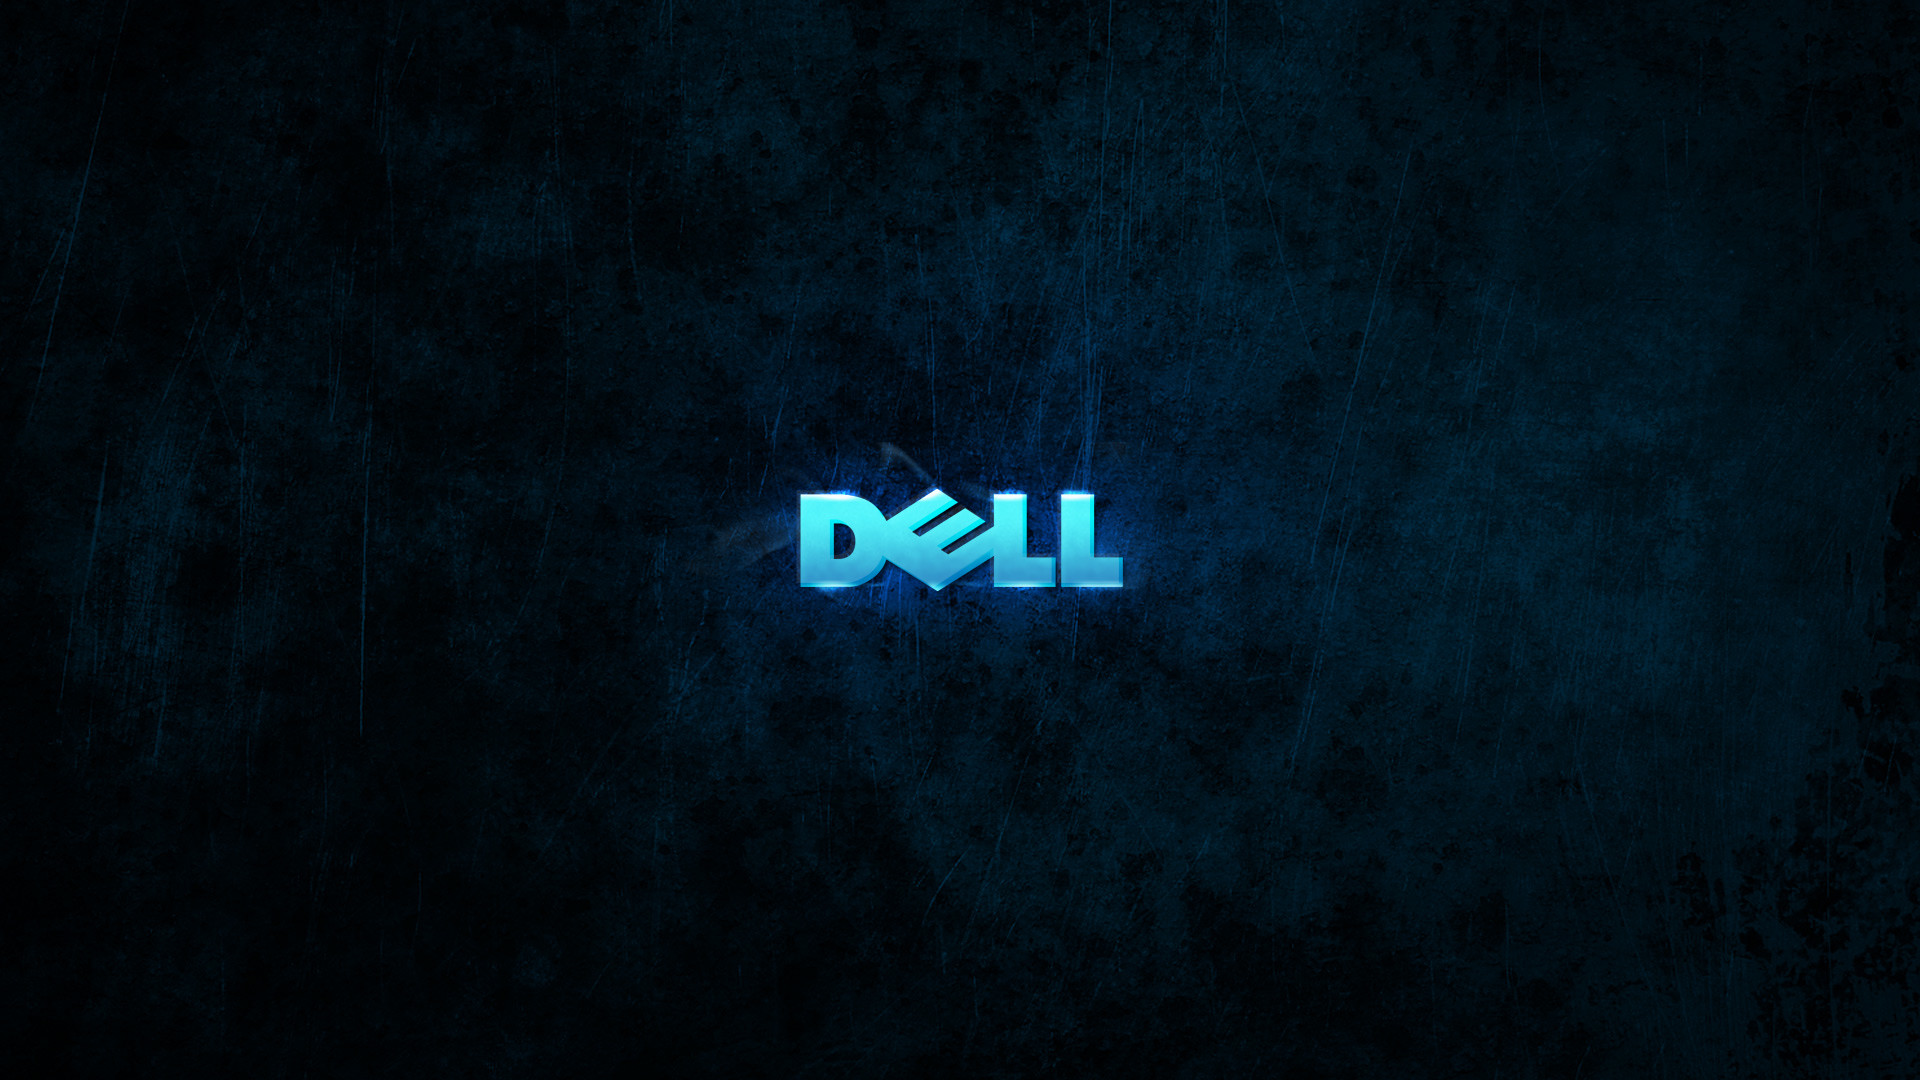 Dell Stock Wallpapers